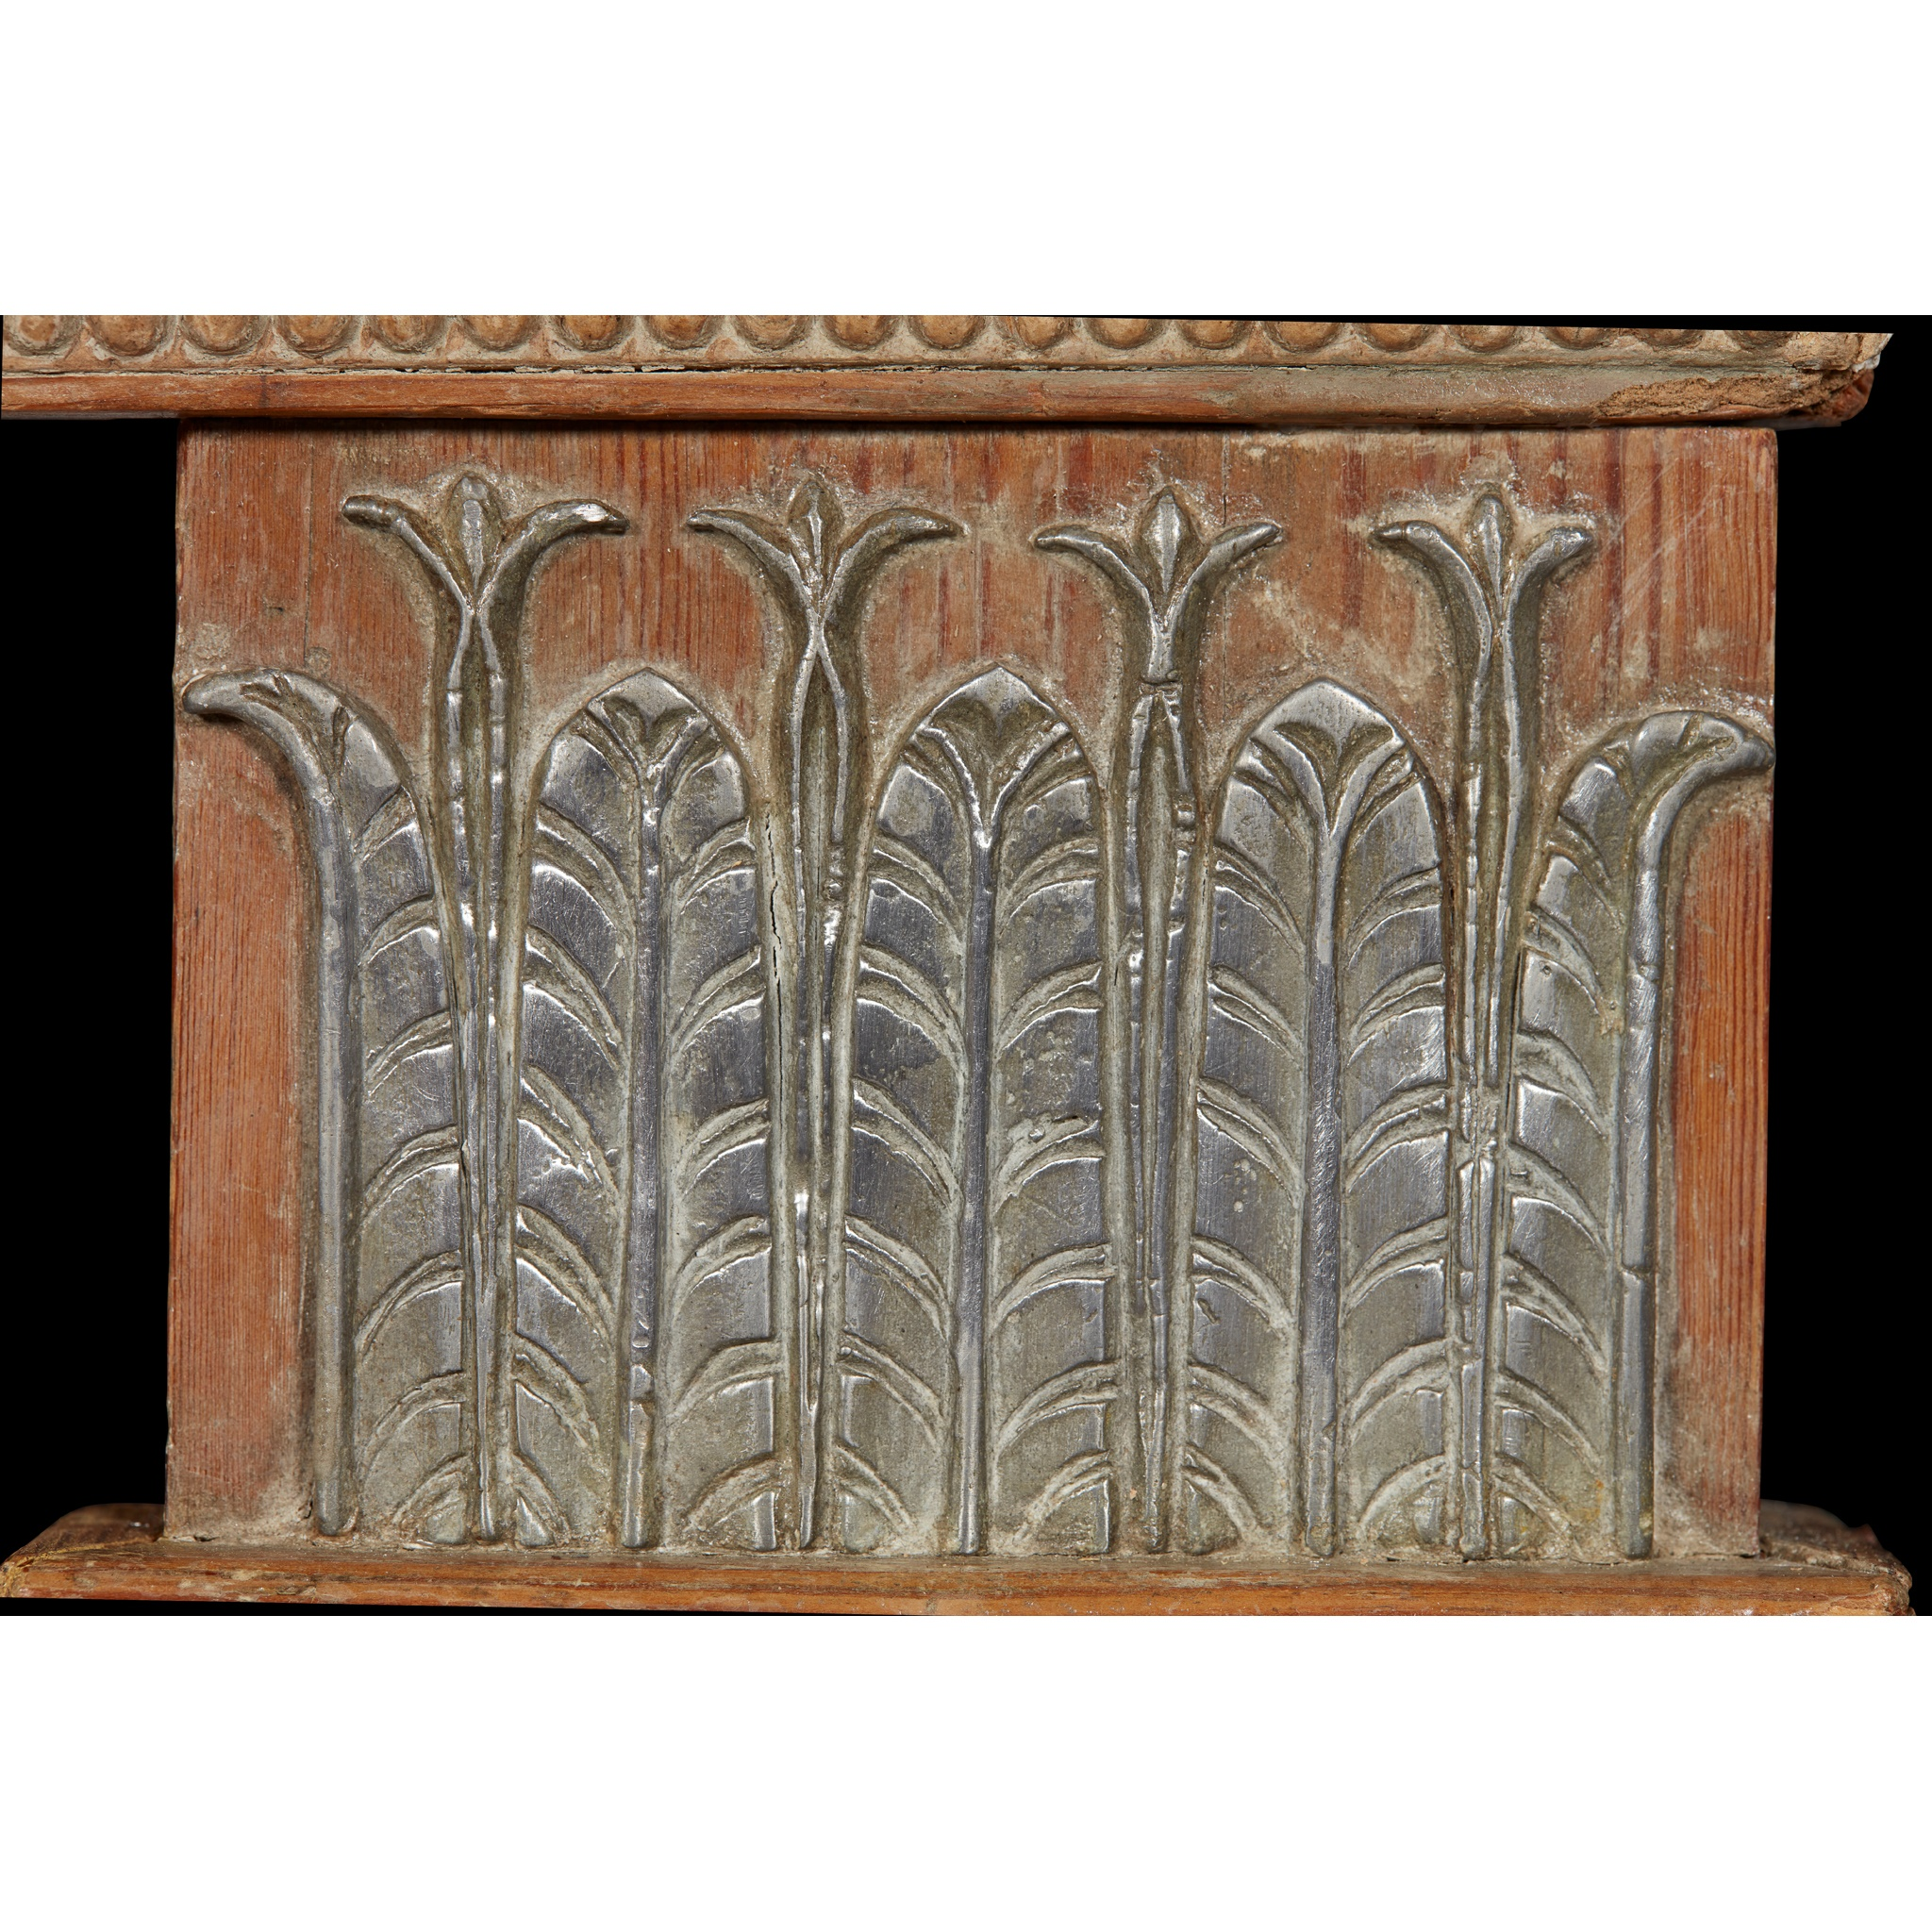 RARE GEORGE III PEWTER AND GESSO MOUNTED FIRE SURROUND 18TH CENTURY - Image 2 of 7